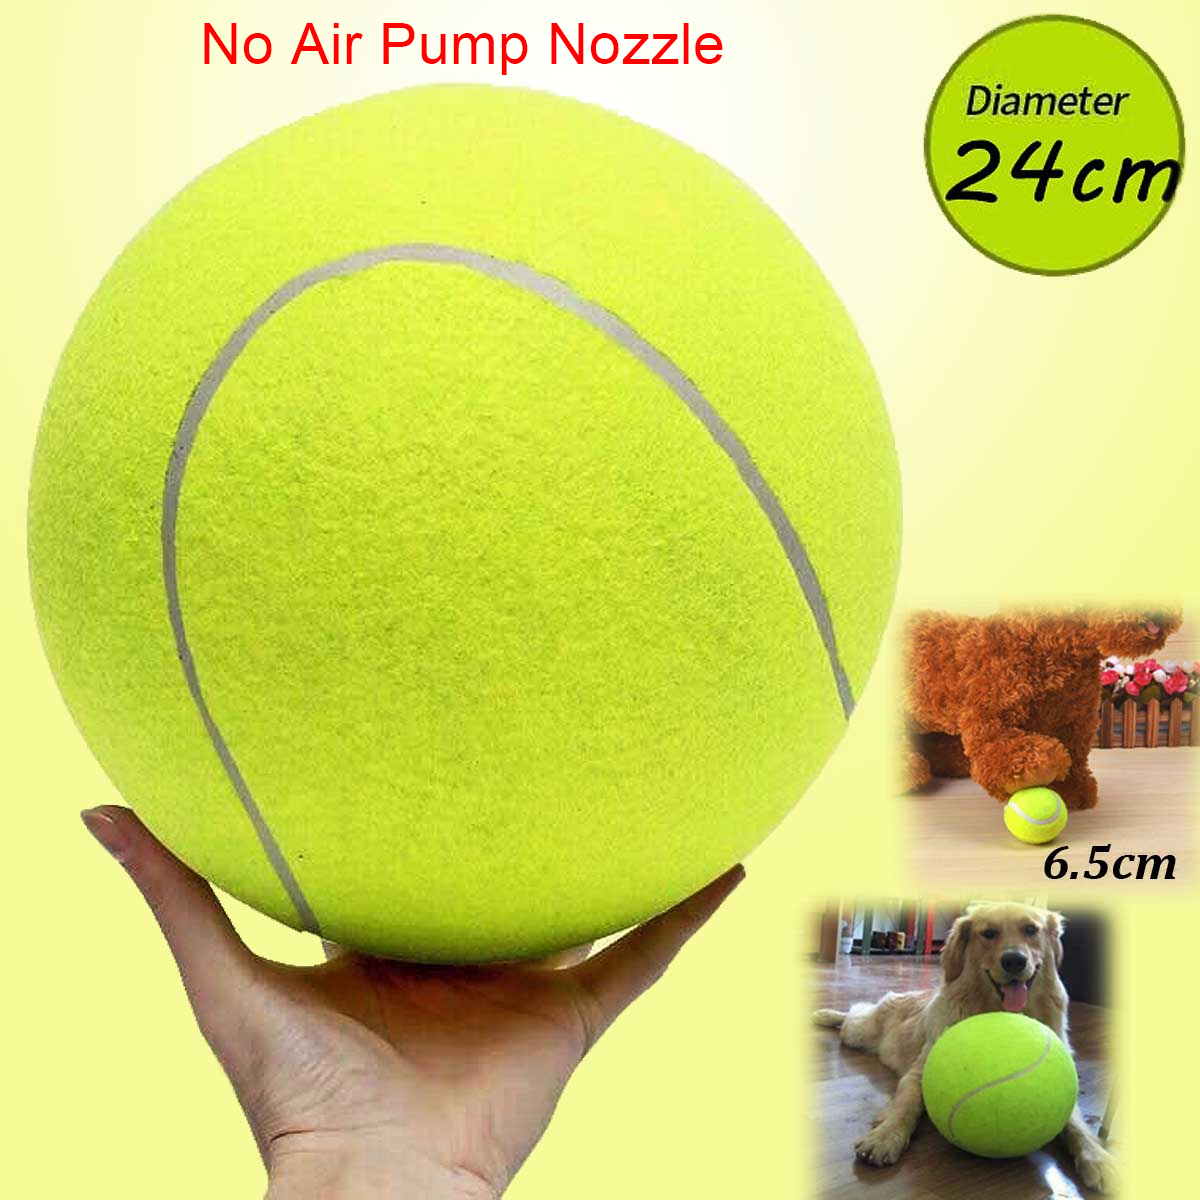 Diameter 9.5 inch Rubber Kelly Tennis Ball Giant Pet Toy Dog Puppy Fun Thrower Chucker Launcher Play Training Large Ball